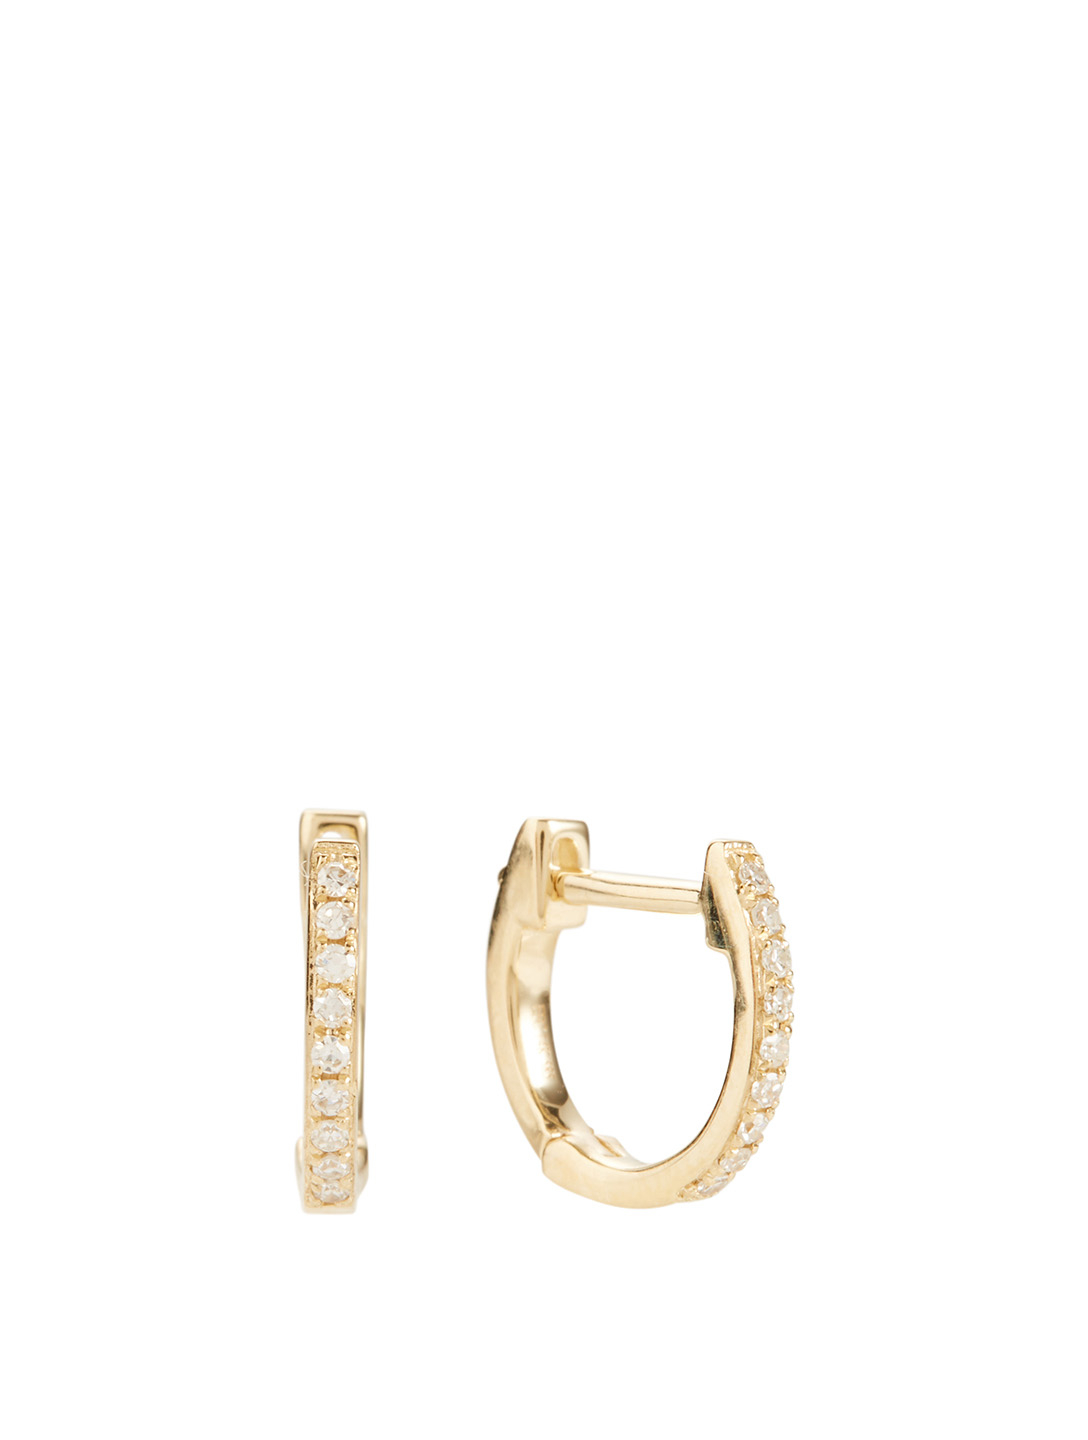 EF COLLECTION Mini 14K Gold Huggie Hoop Earrings With Diamonds Women's Metallic